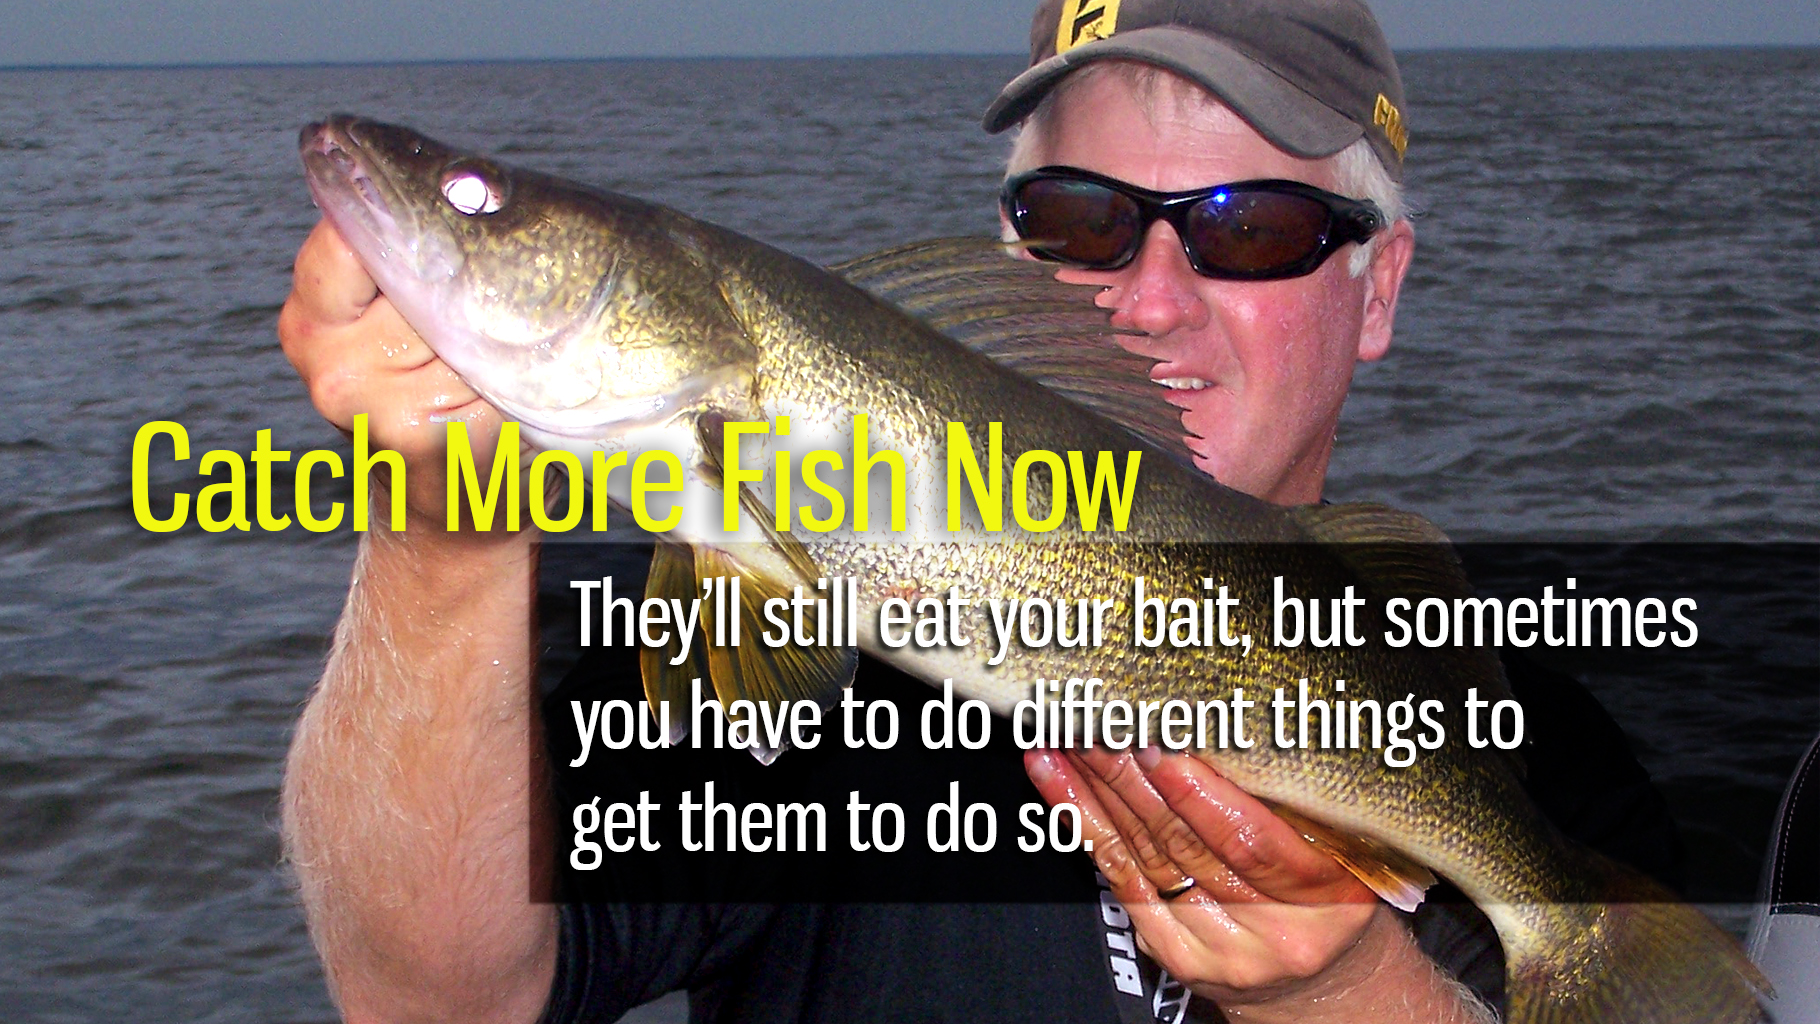 Catch More Fish Now